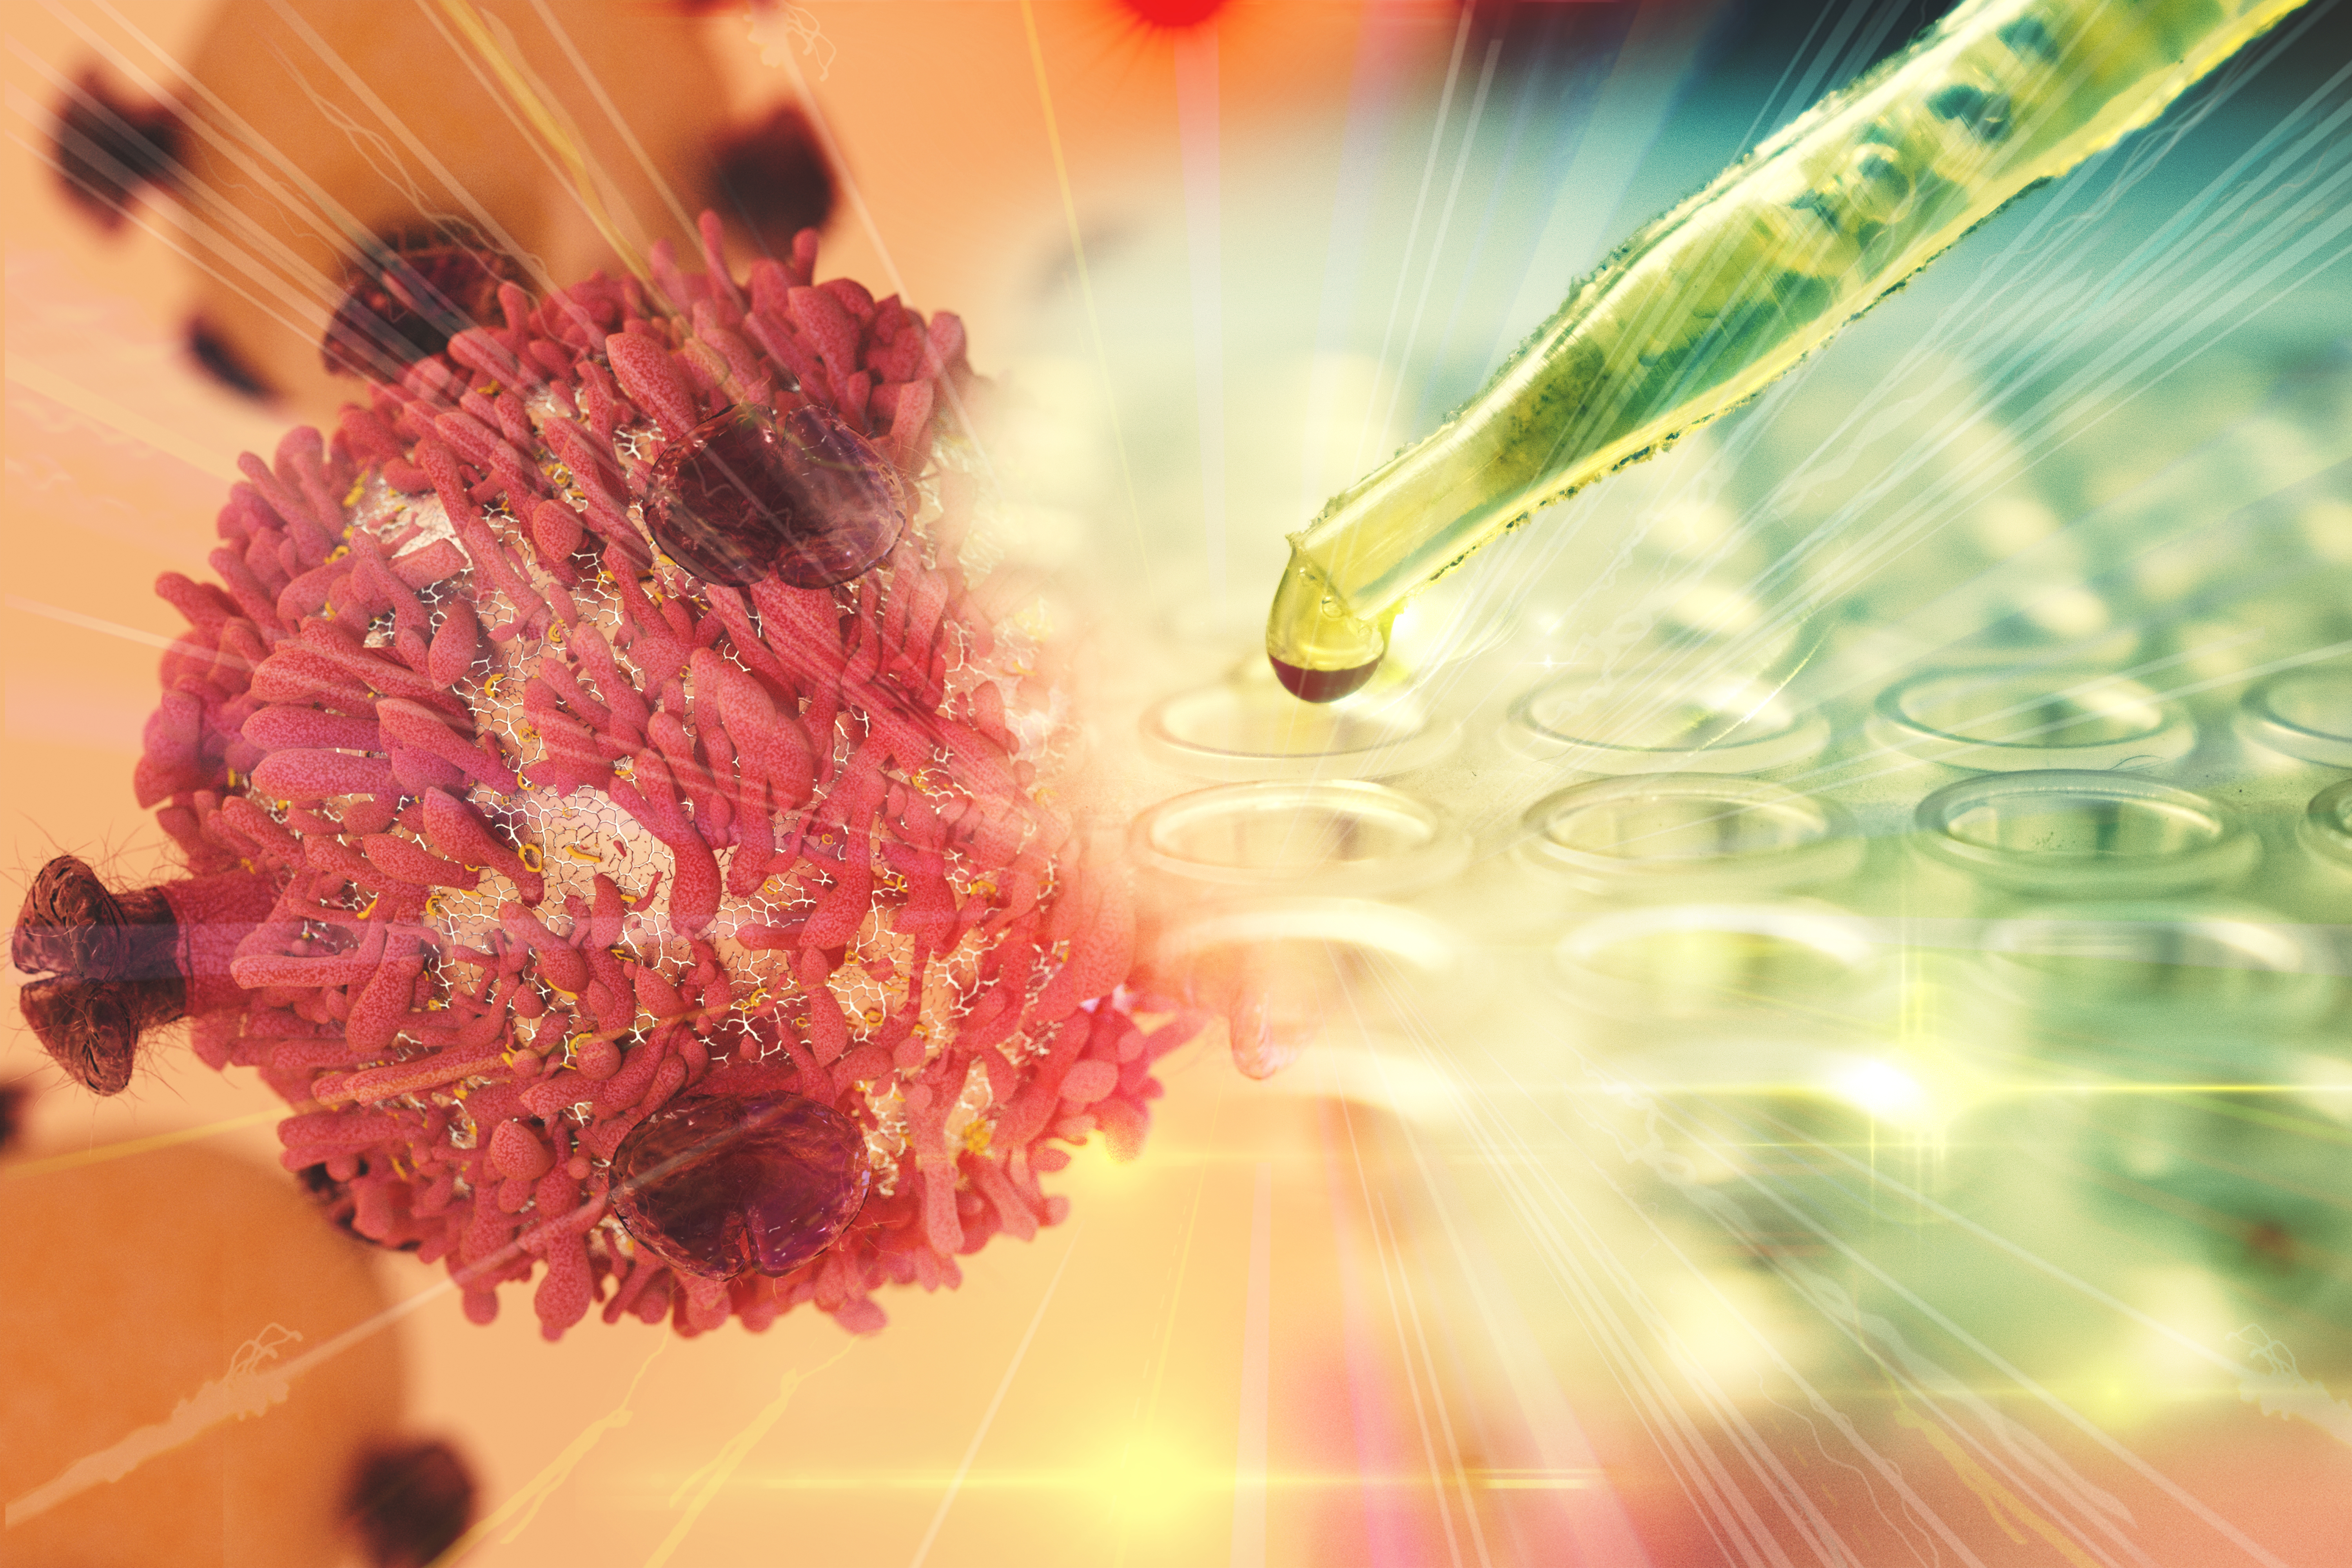 Bupathi Explores Second-line Therapies for a Patient With Transitional Cell Carcinoma